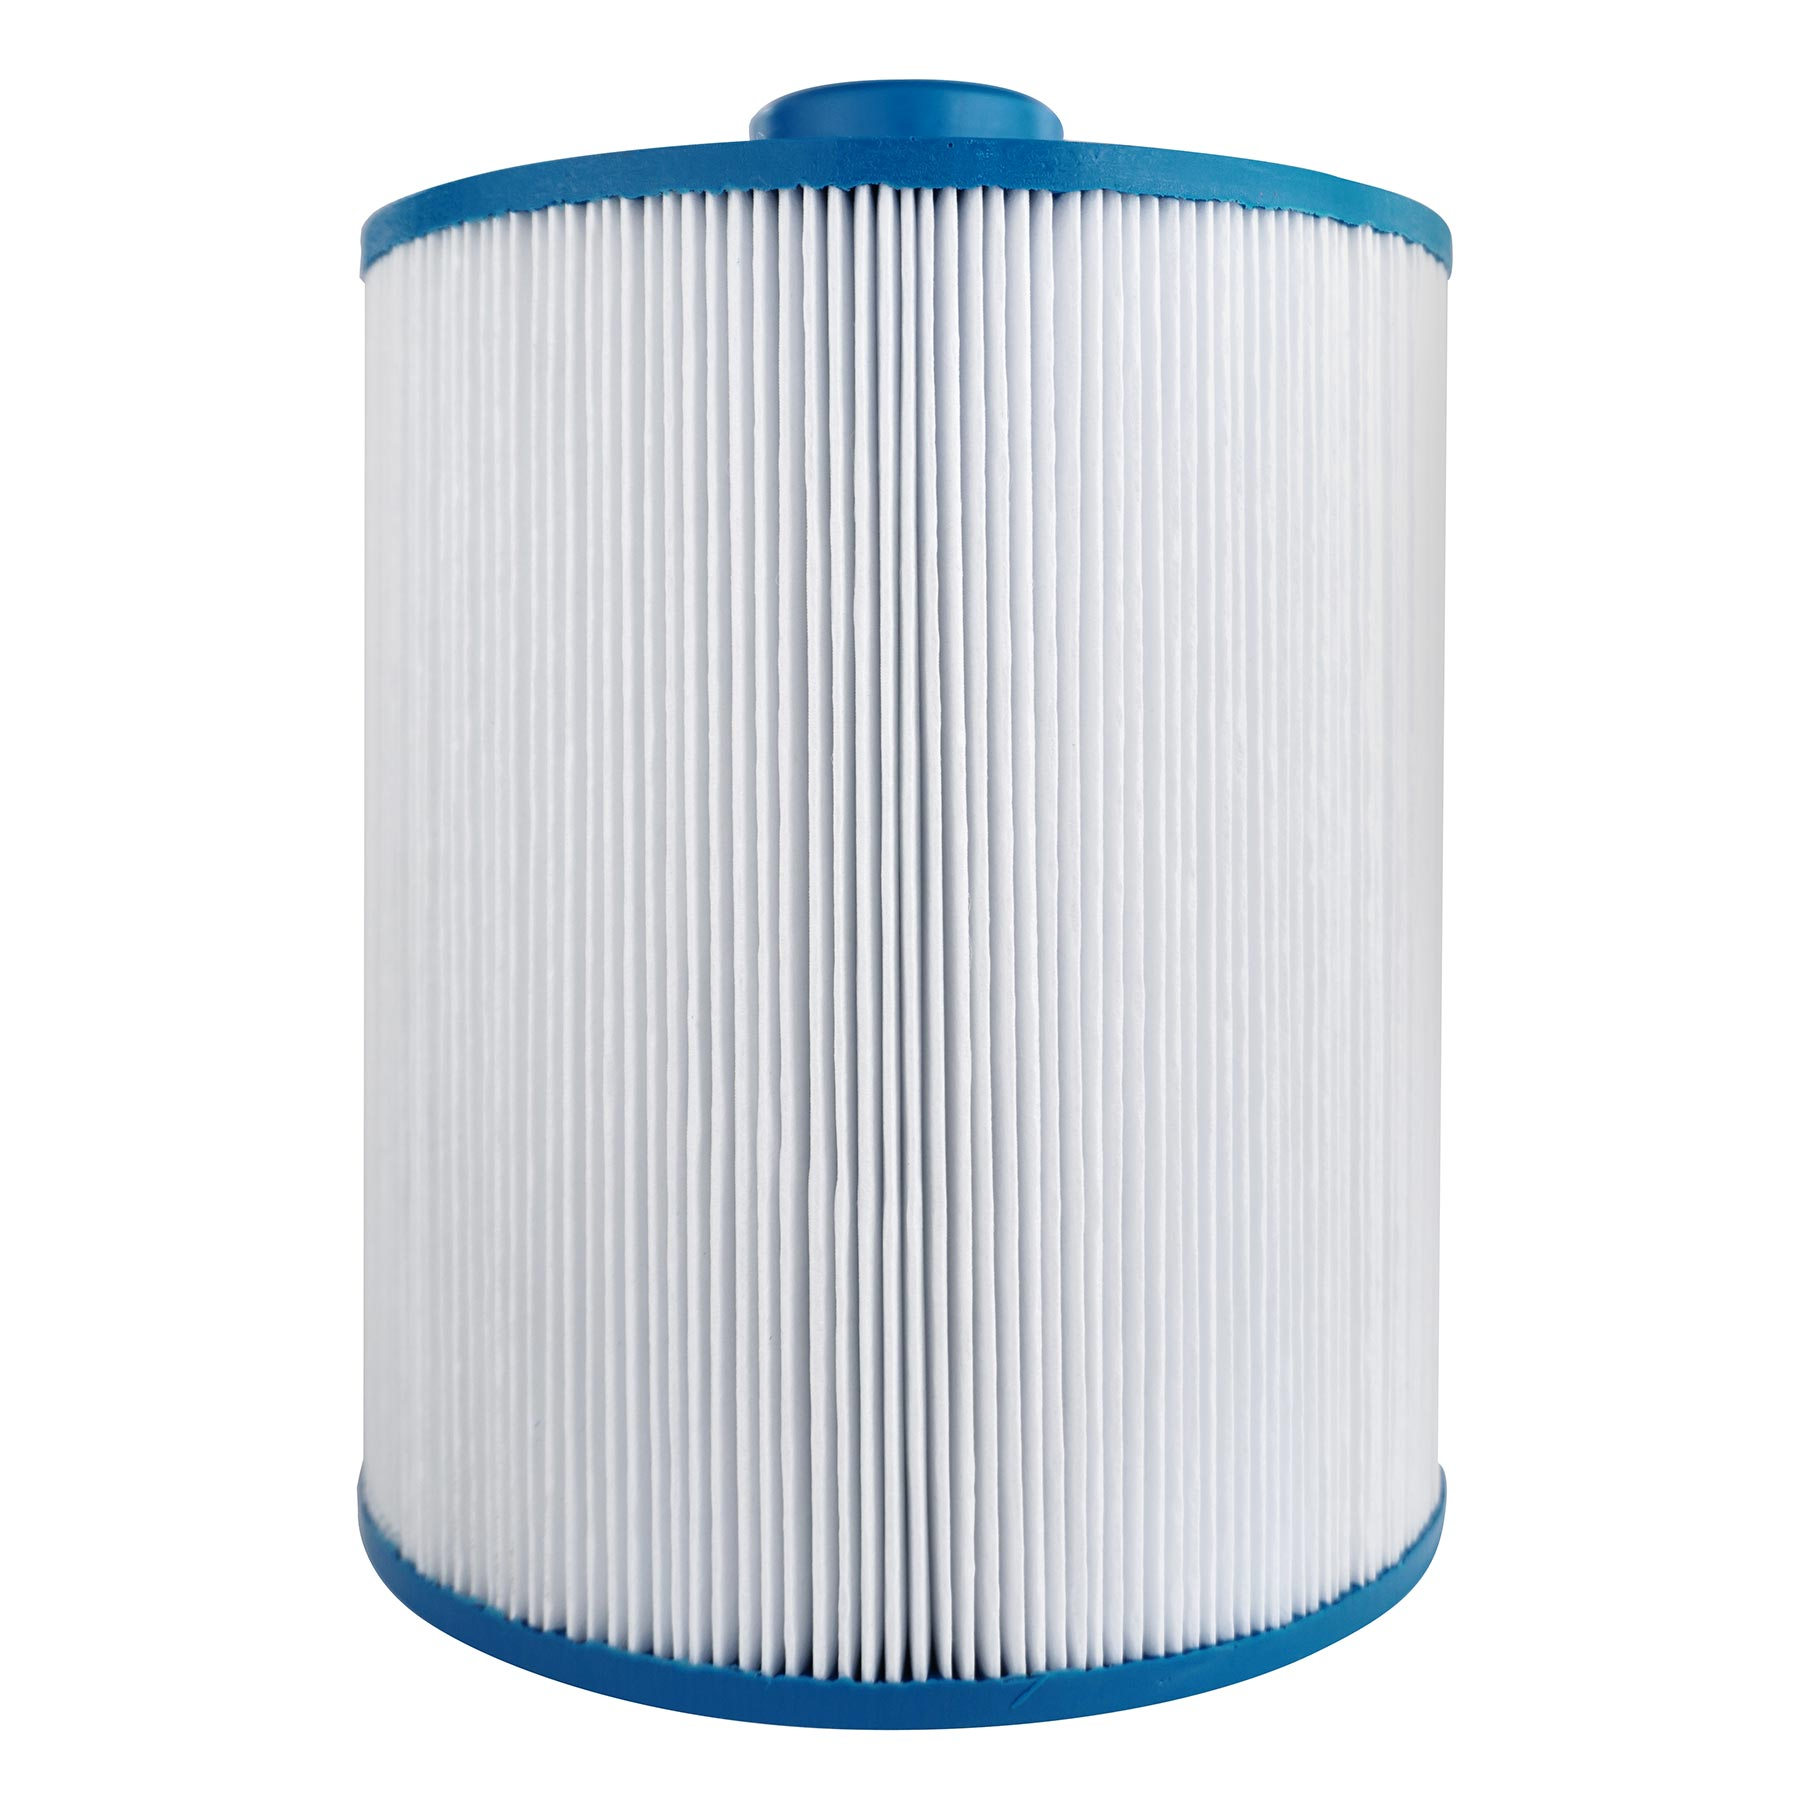 Replaces Unicel C-8450, Pleatco PCS50N - Pool & Spa Filter Cartridge-Filter Cartridge-FilterDeal.com